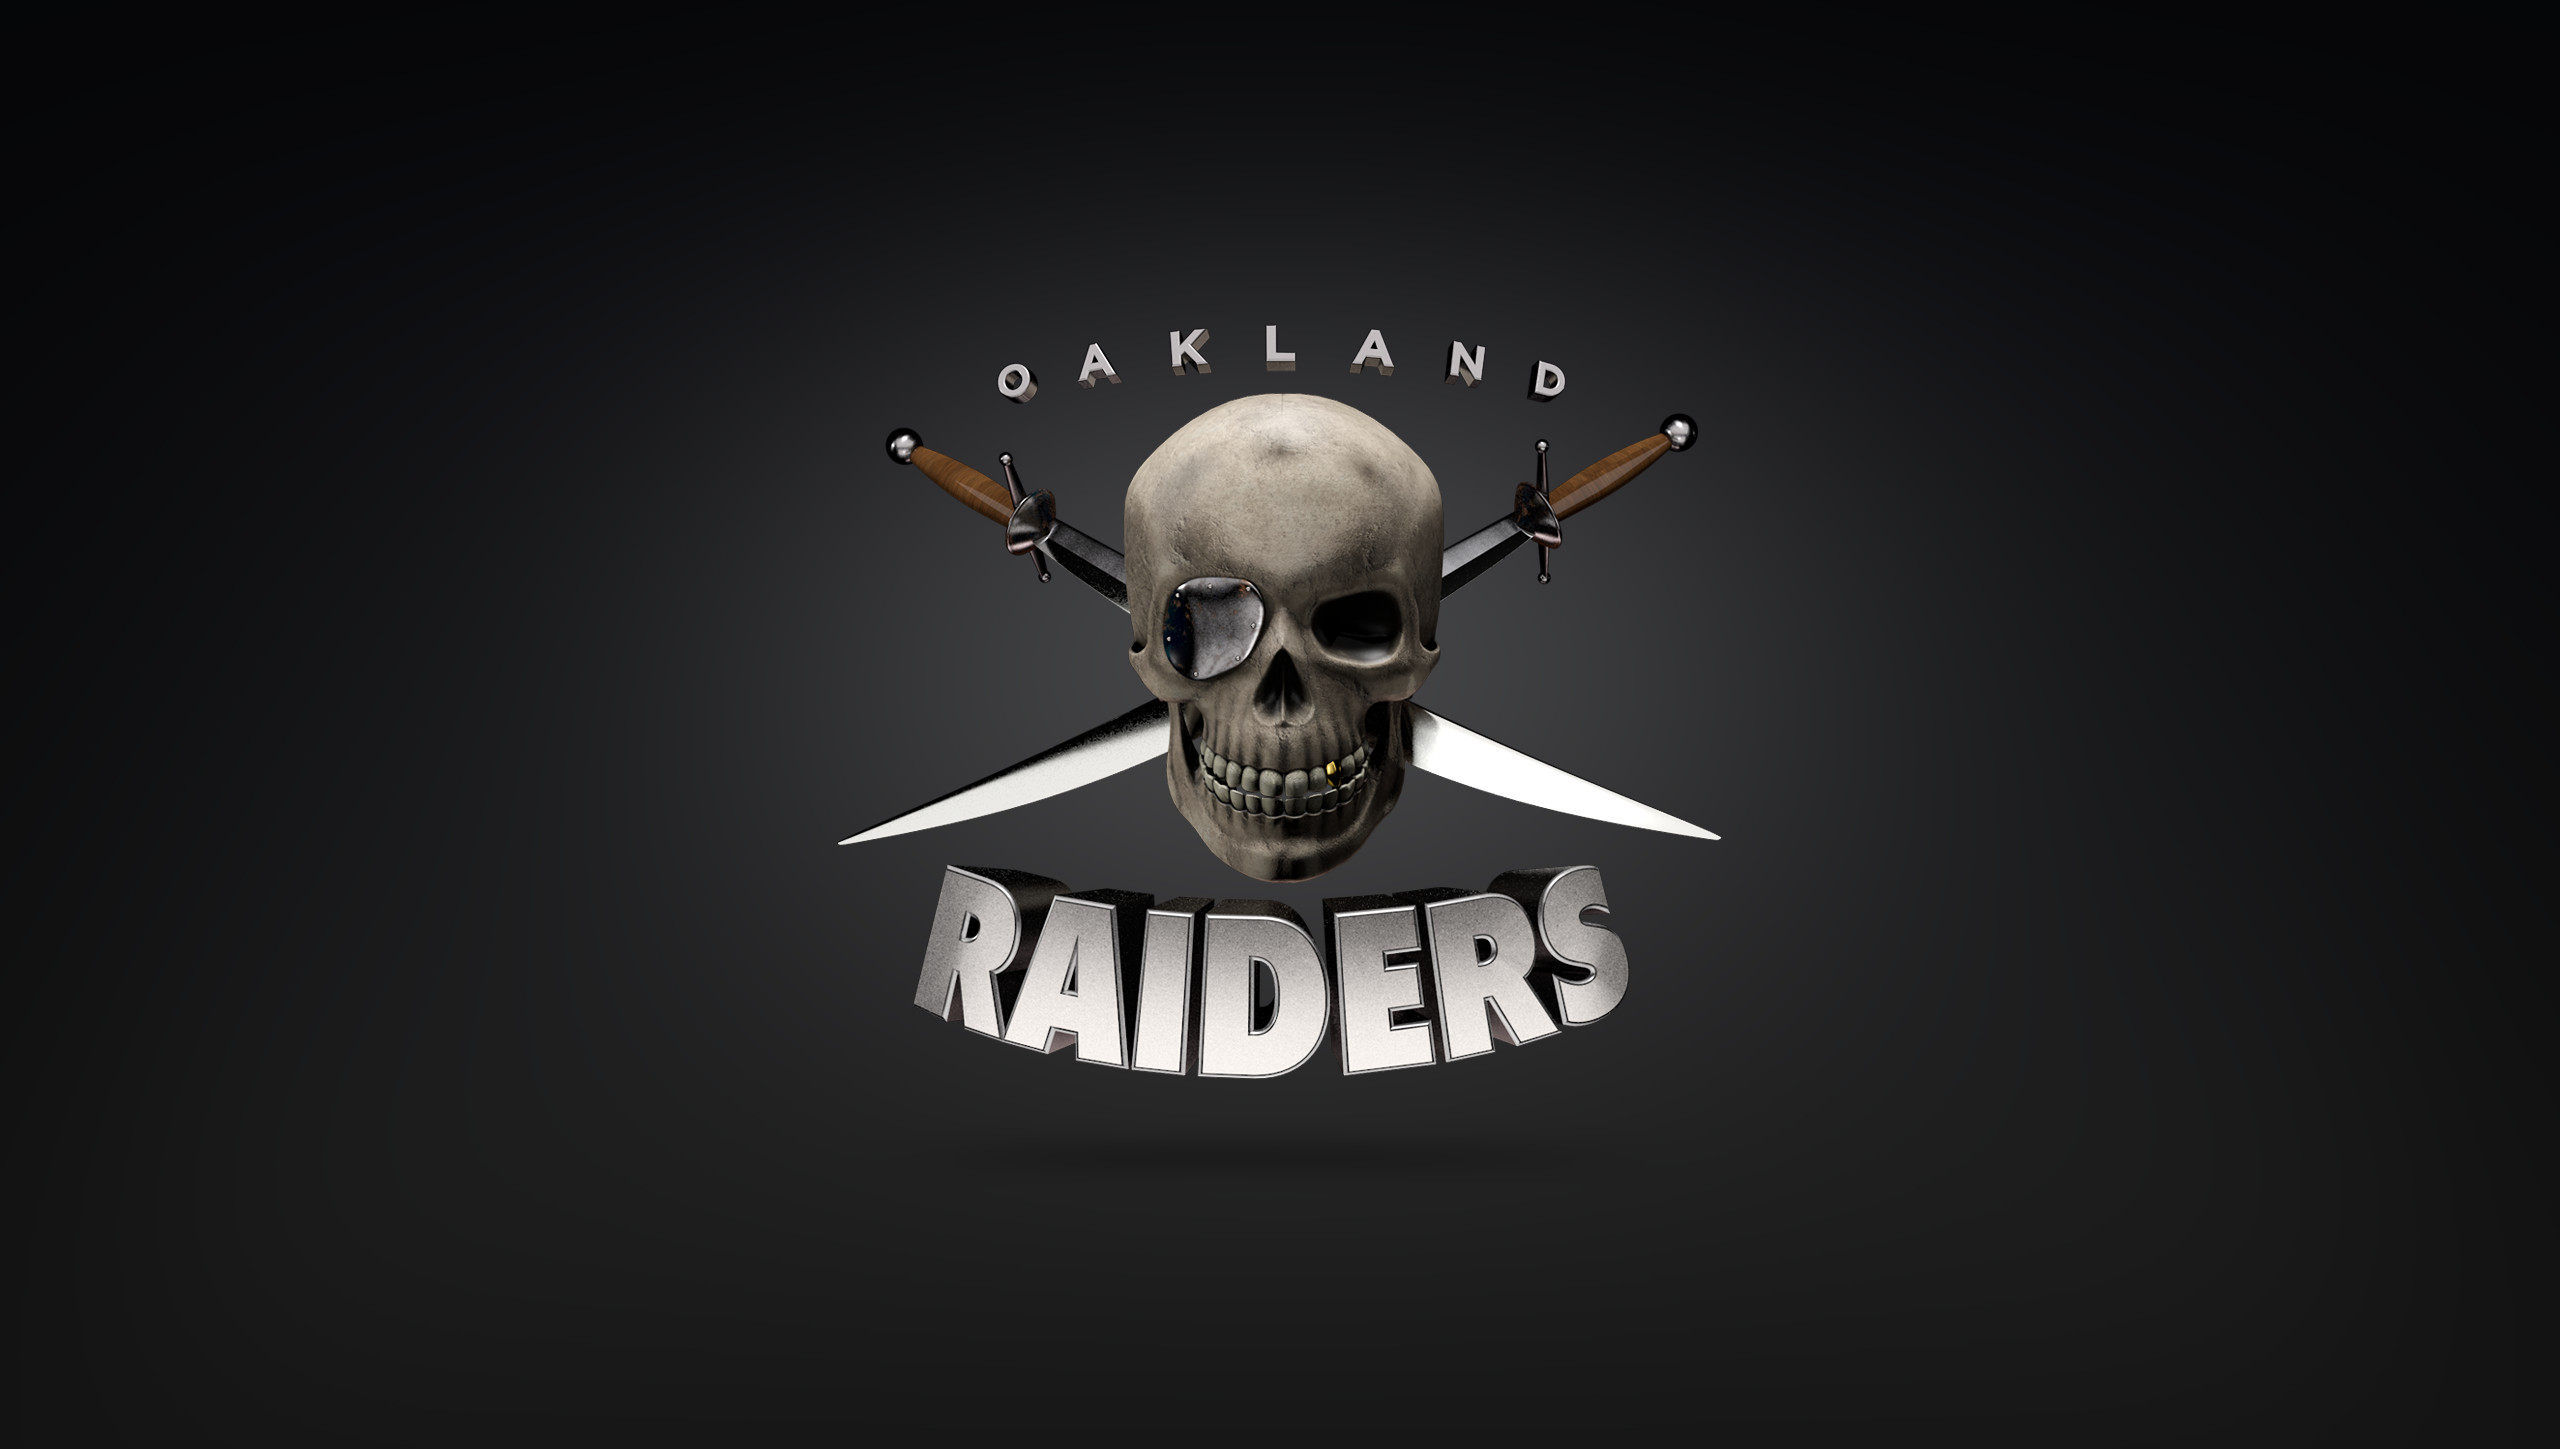 2560x1449 raiders logo wallpapers hd - photo #7. JuJa Italia